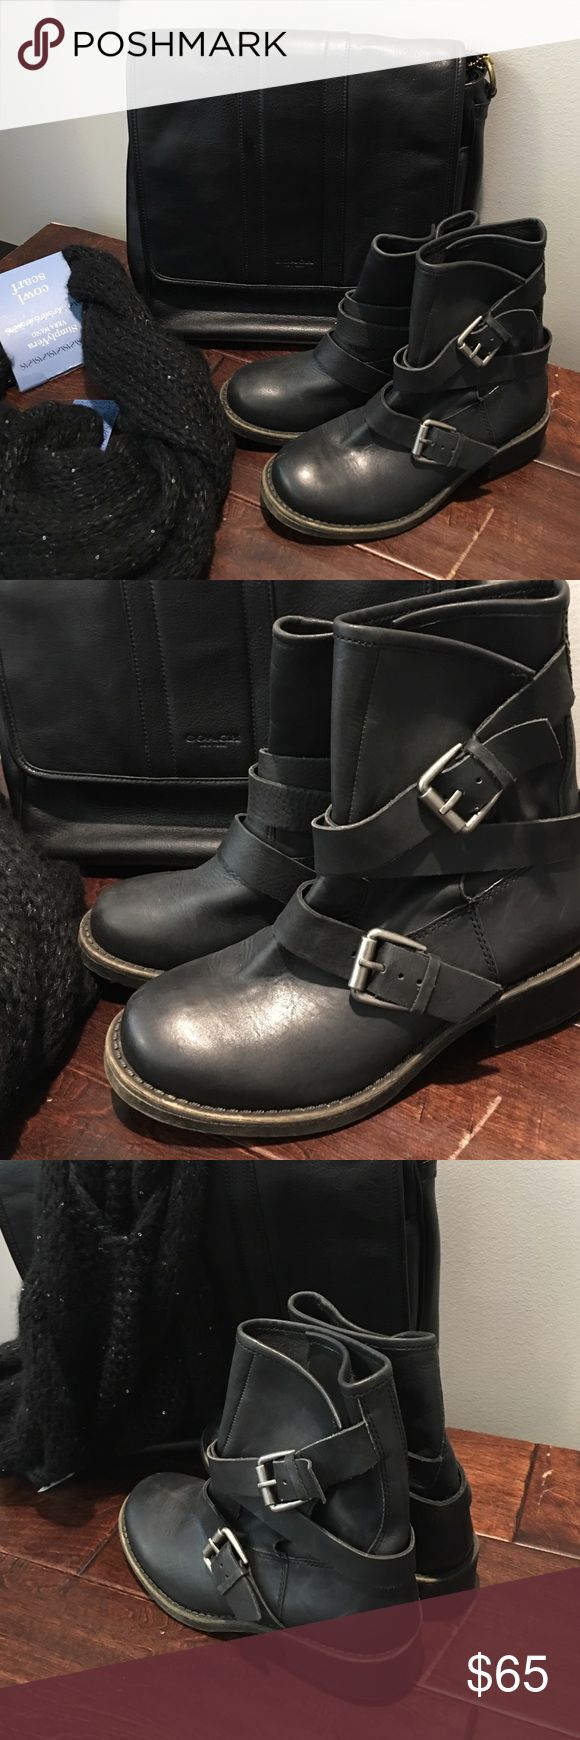 Lucky Brand Black Biker Boot Lucky Brand leather biker boots.  Only worn once.  In great condition. Lucky Brand Shoes Ankle Boots & Booties